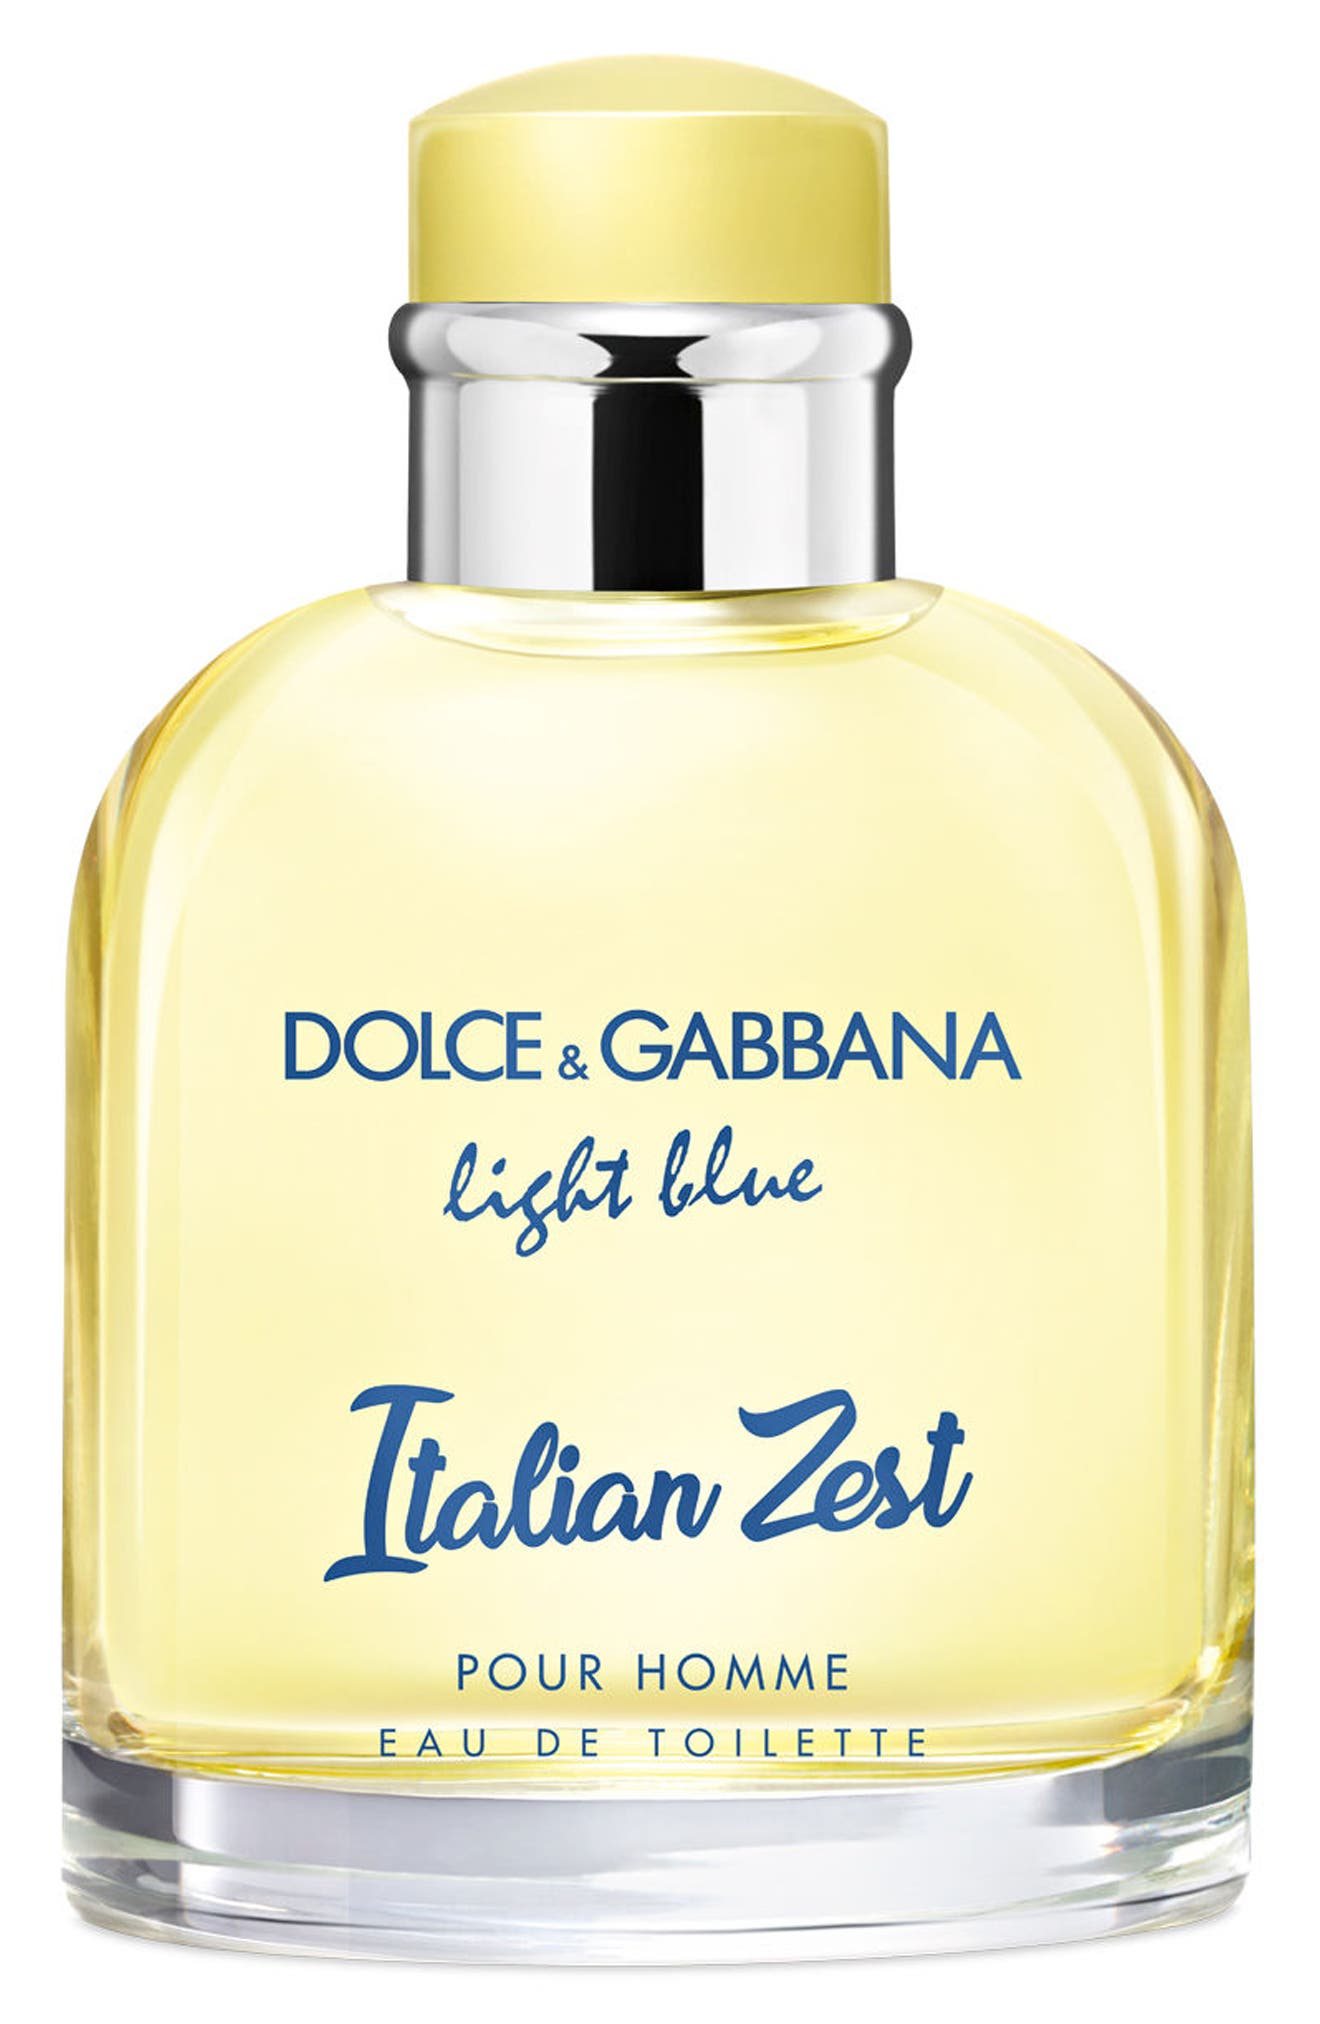 Dolce&Gabbana Light Blue Italian Zest pour Homme Eau de Toilette,                             Main thumbnail 1, color,                             No Color